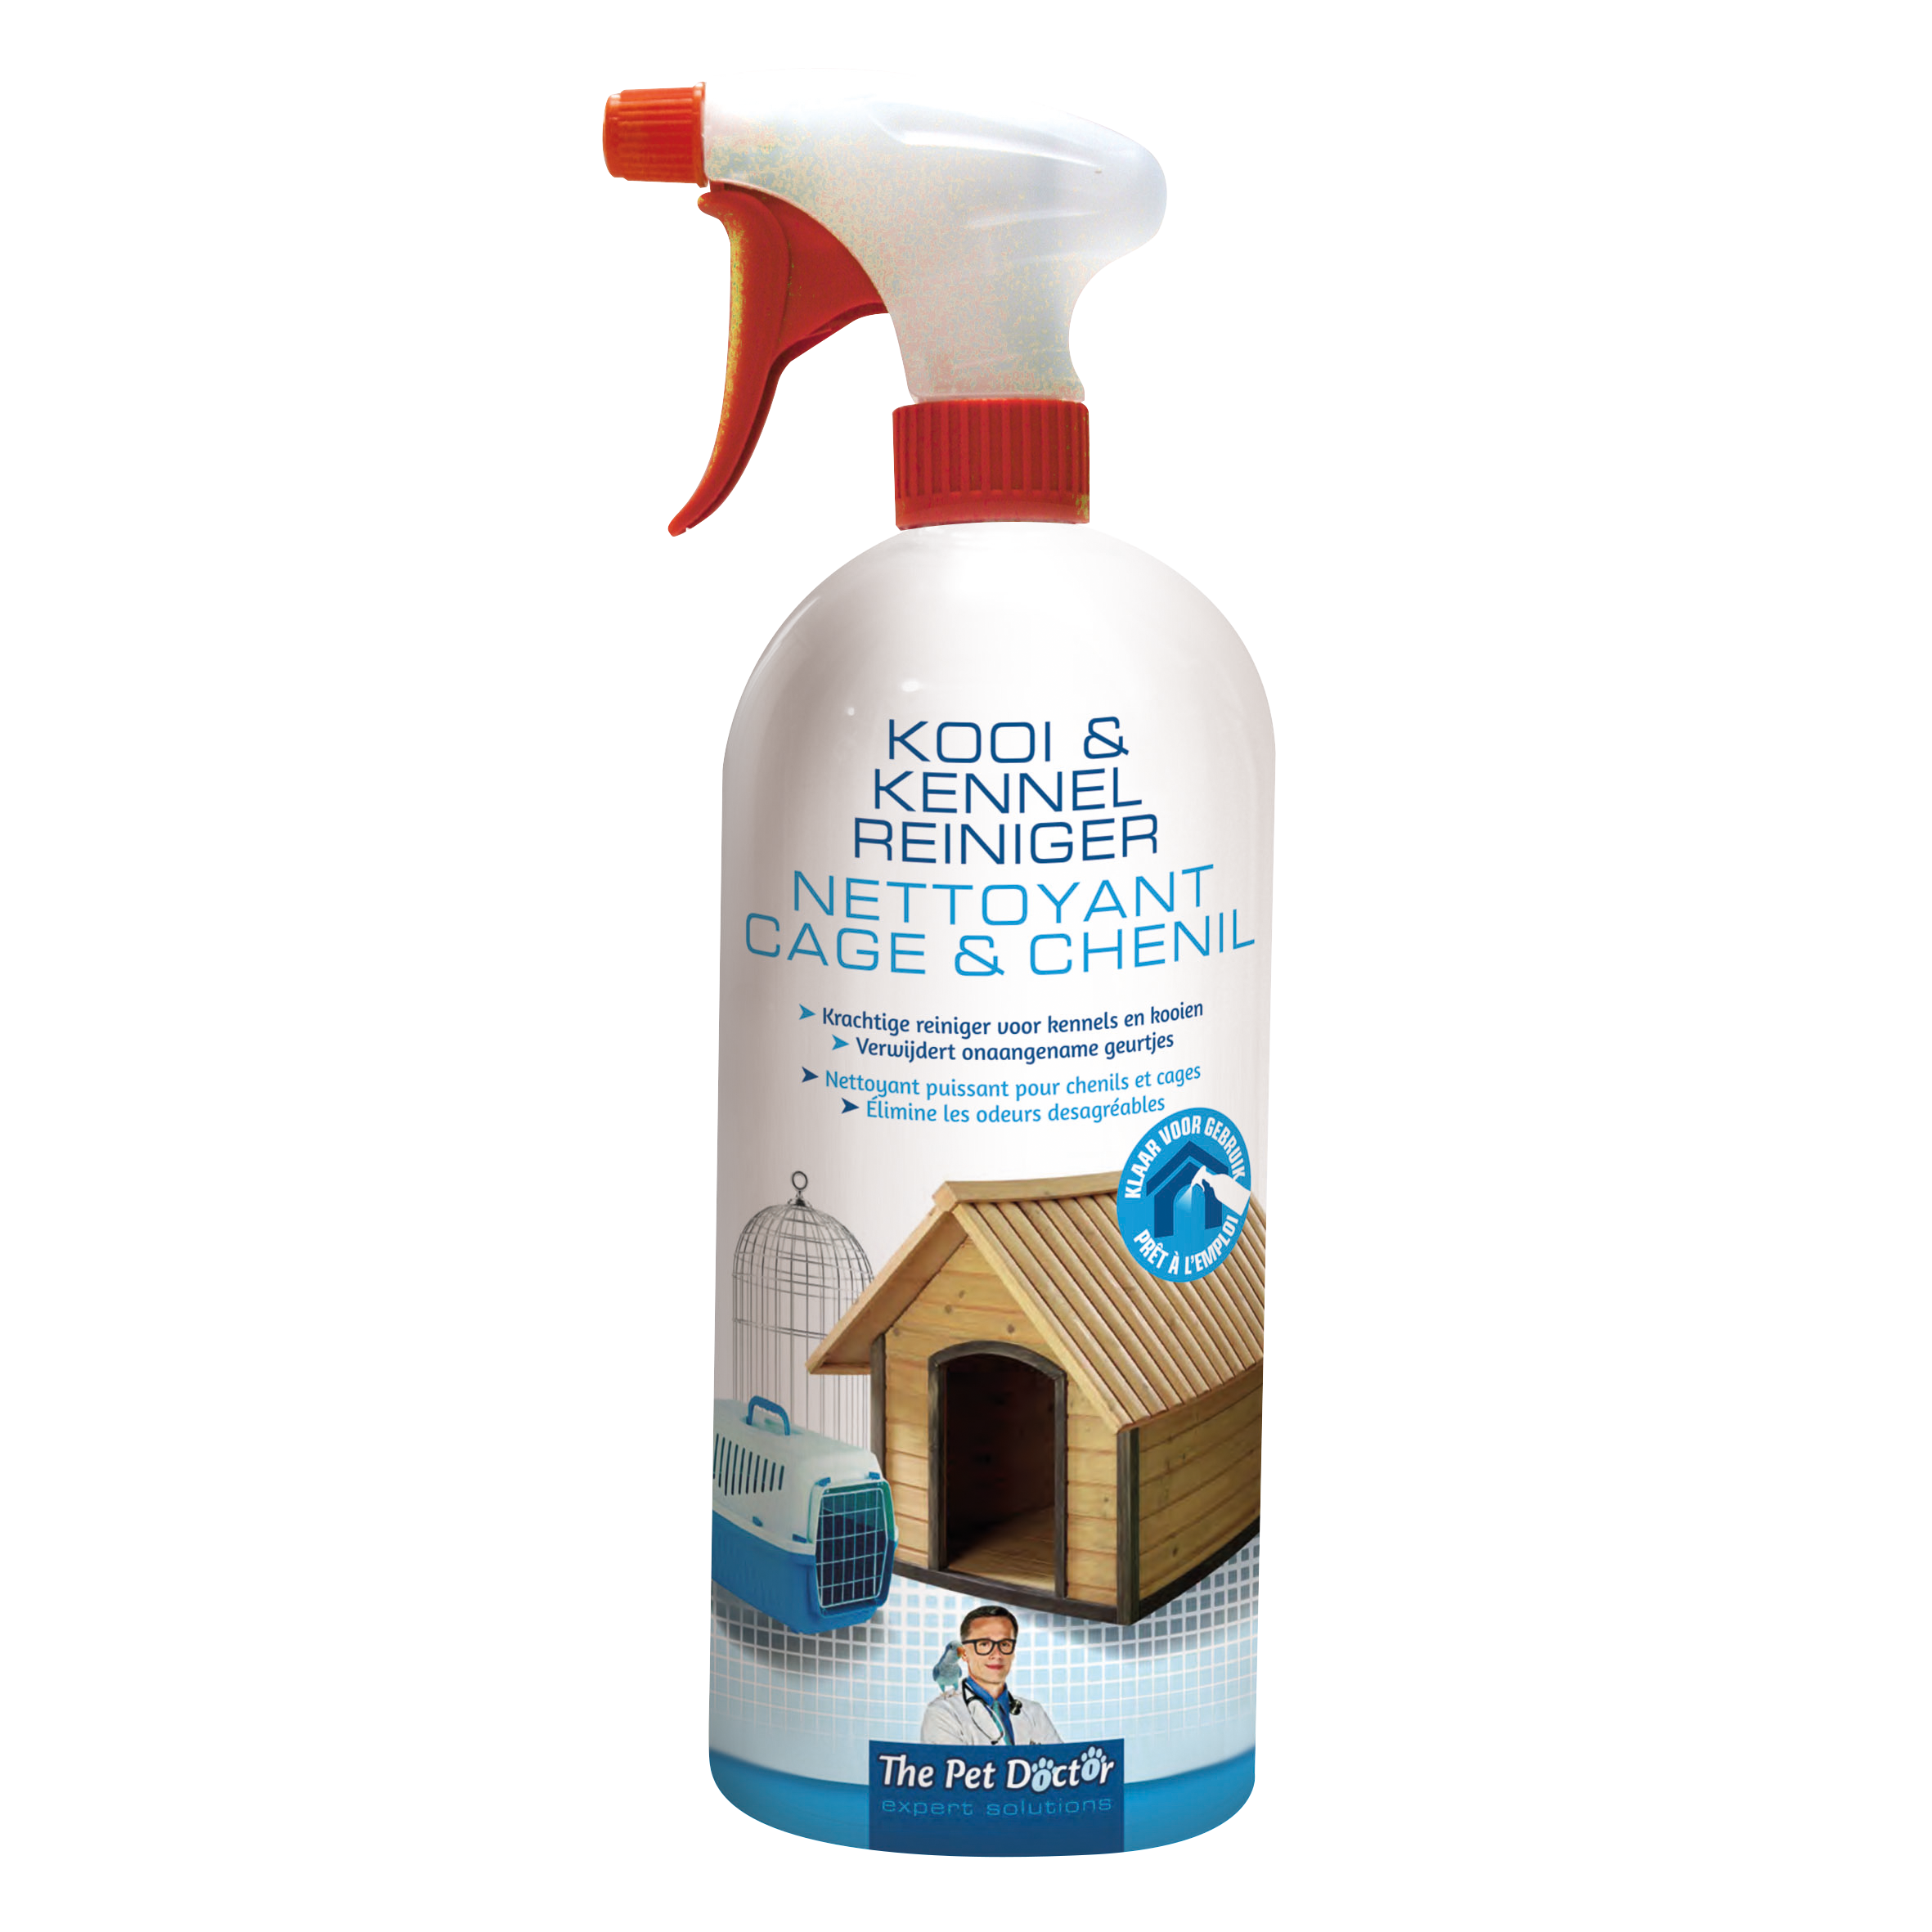 The Pet Doctor Kooi- en Kennelreiniger RTU 950 ml image